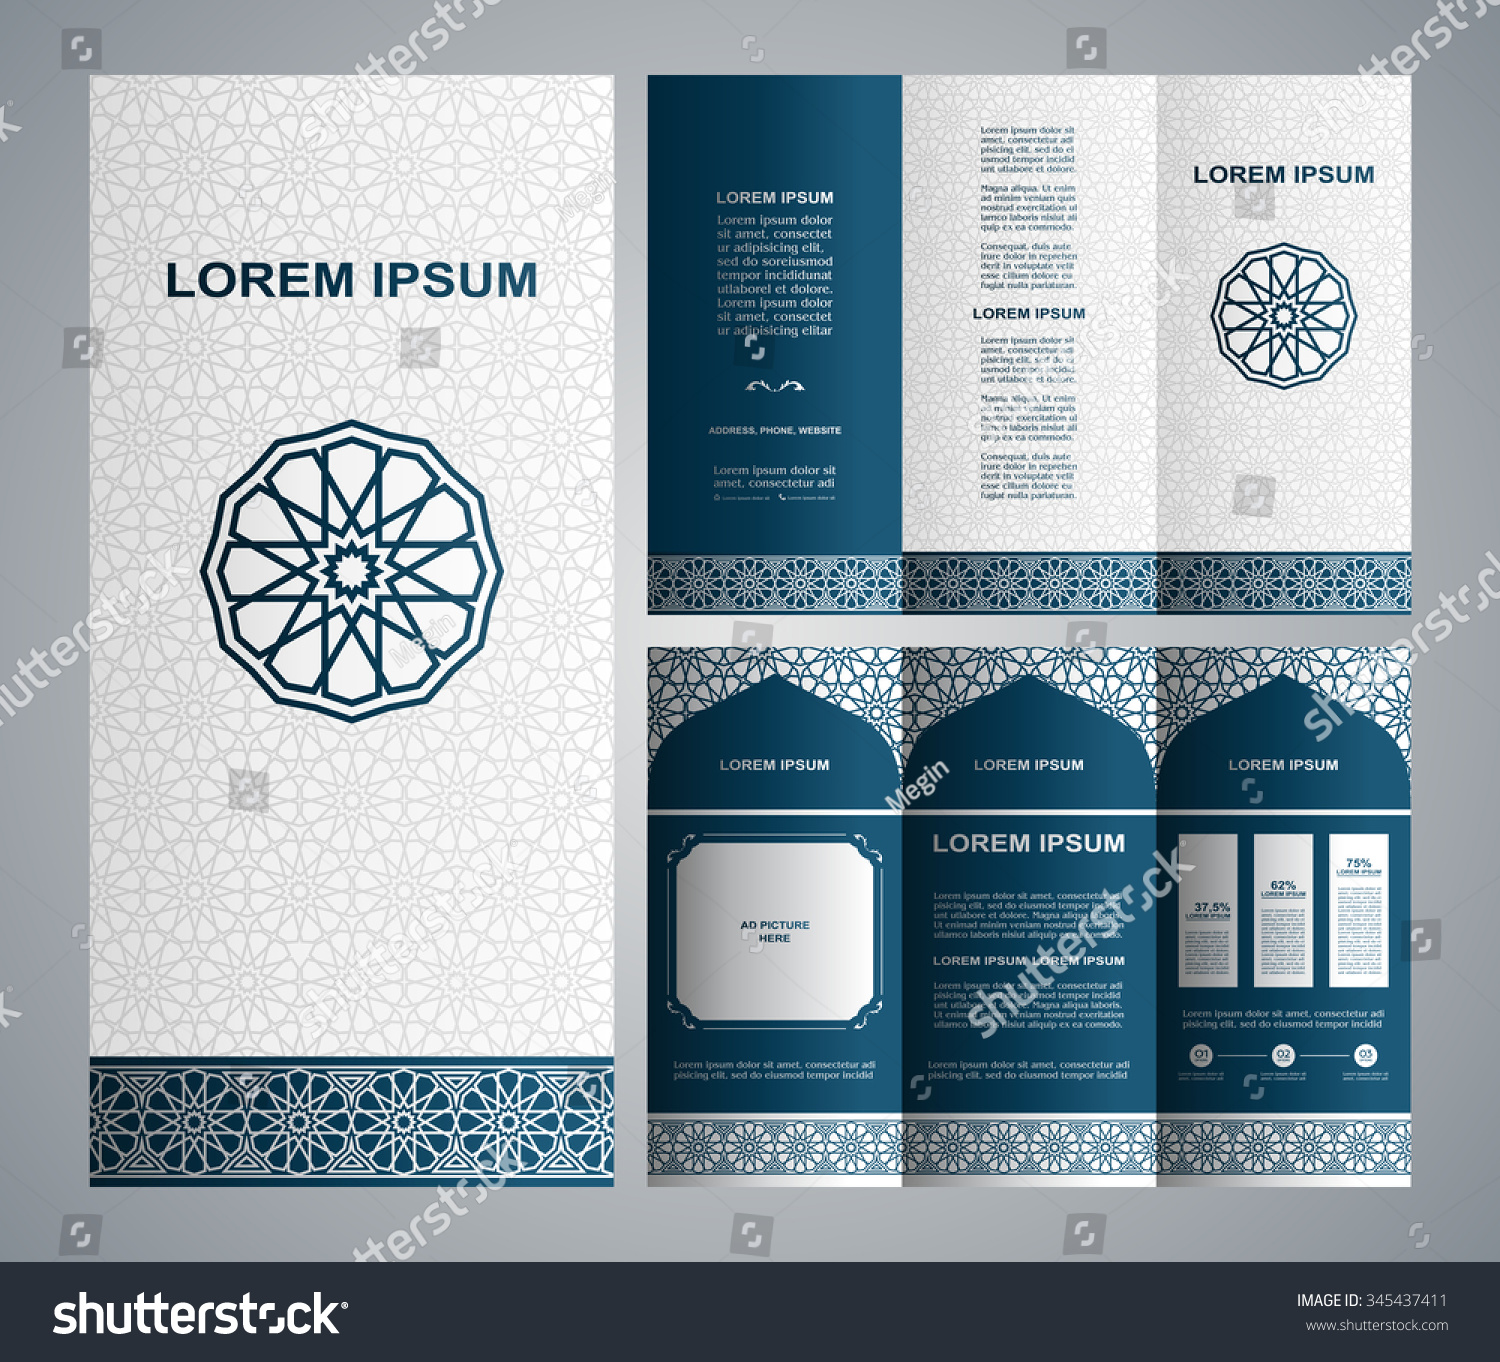 vintage islamic style brochure flyer design stock vector  vintage islamic style brochure and flyer design template logo creative art elements and or nt